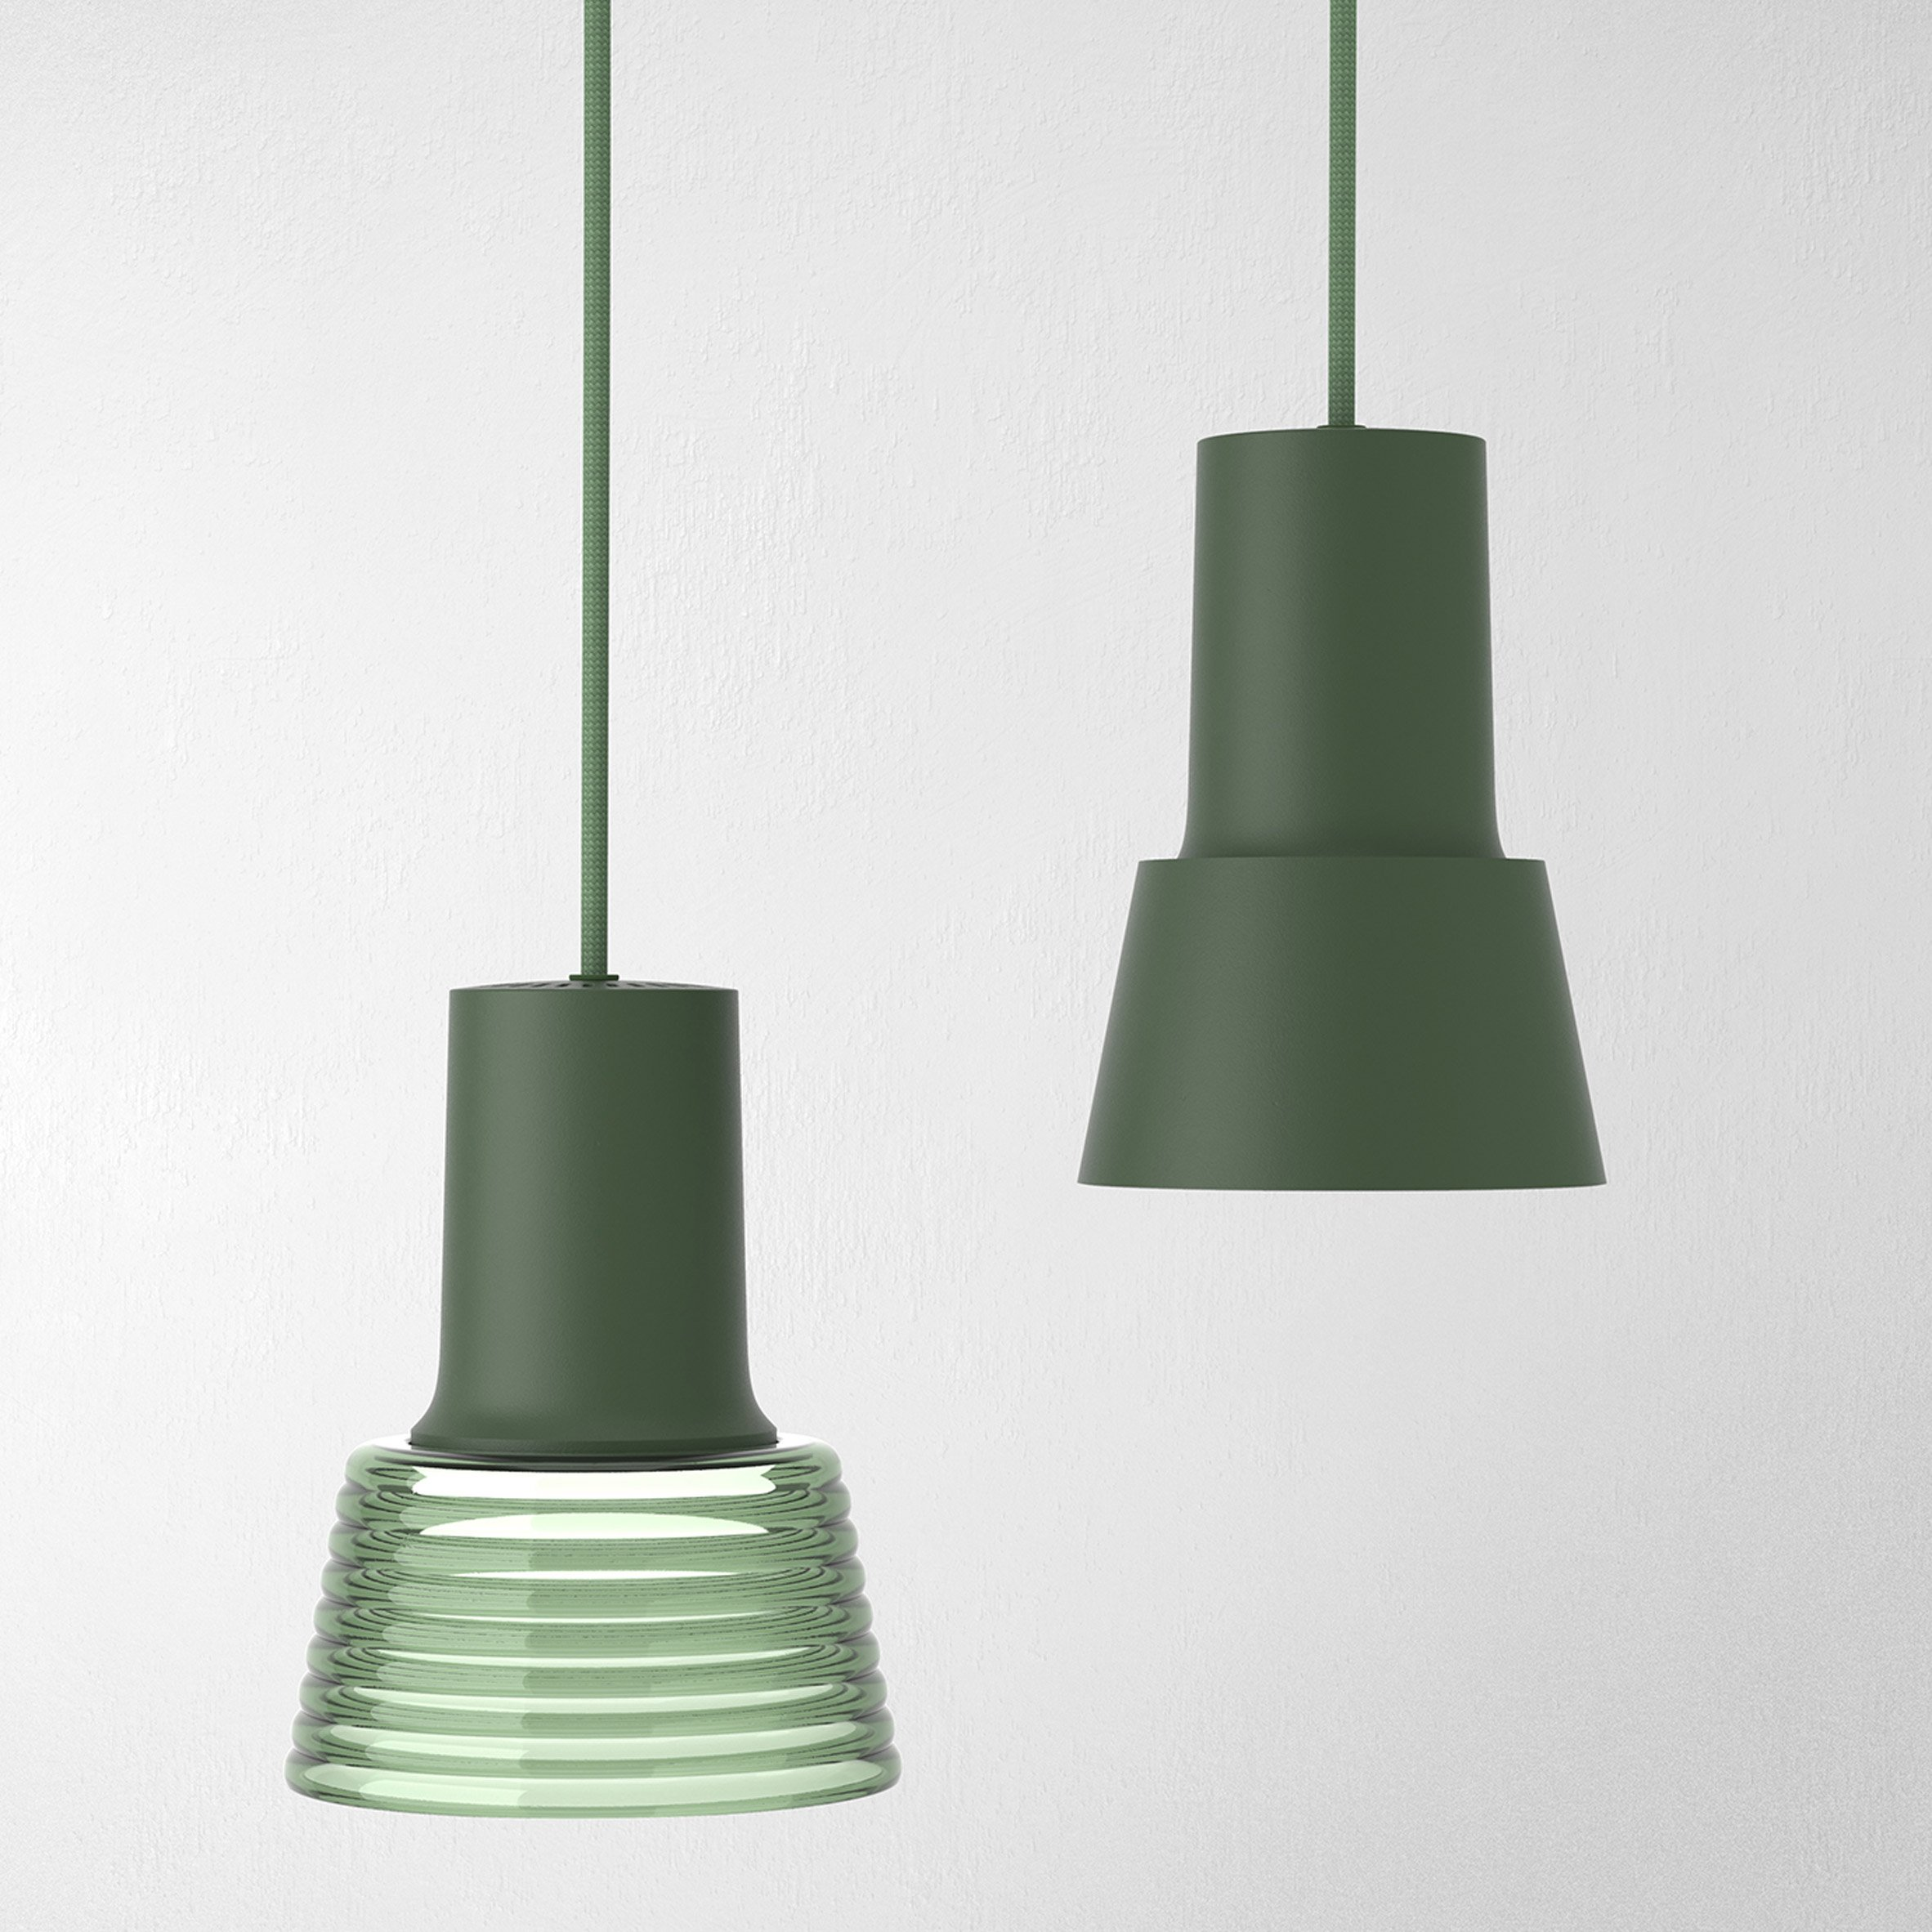 Compose Rail pendant by Jens Fager for Zero Lighting